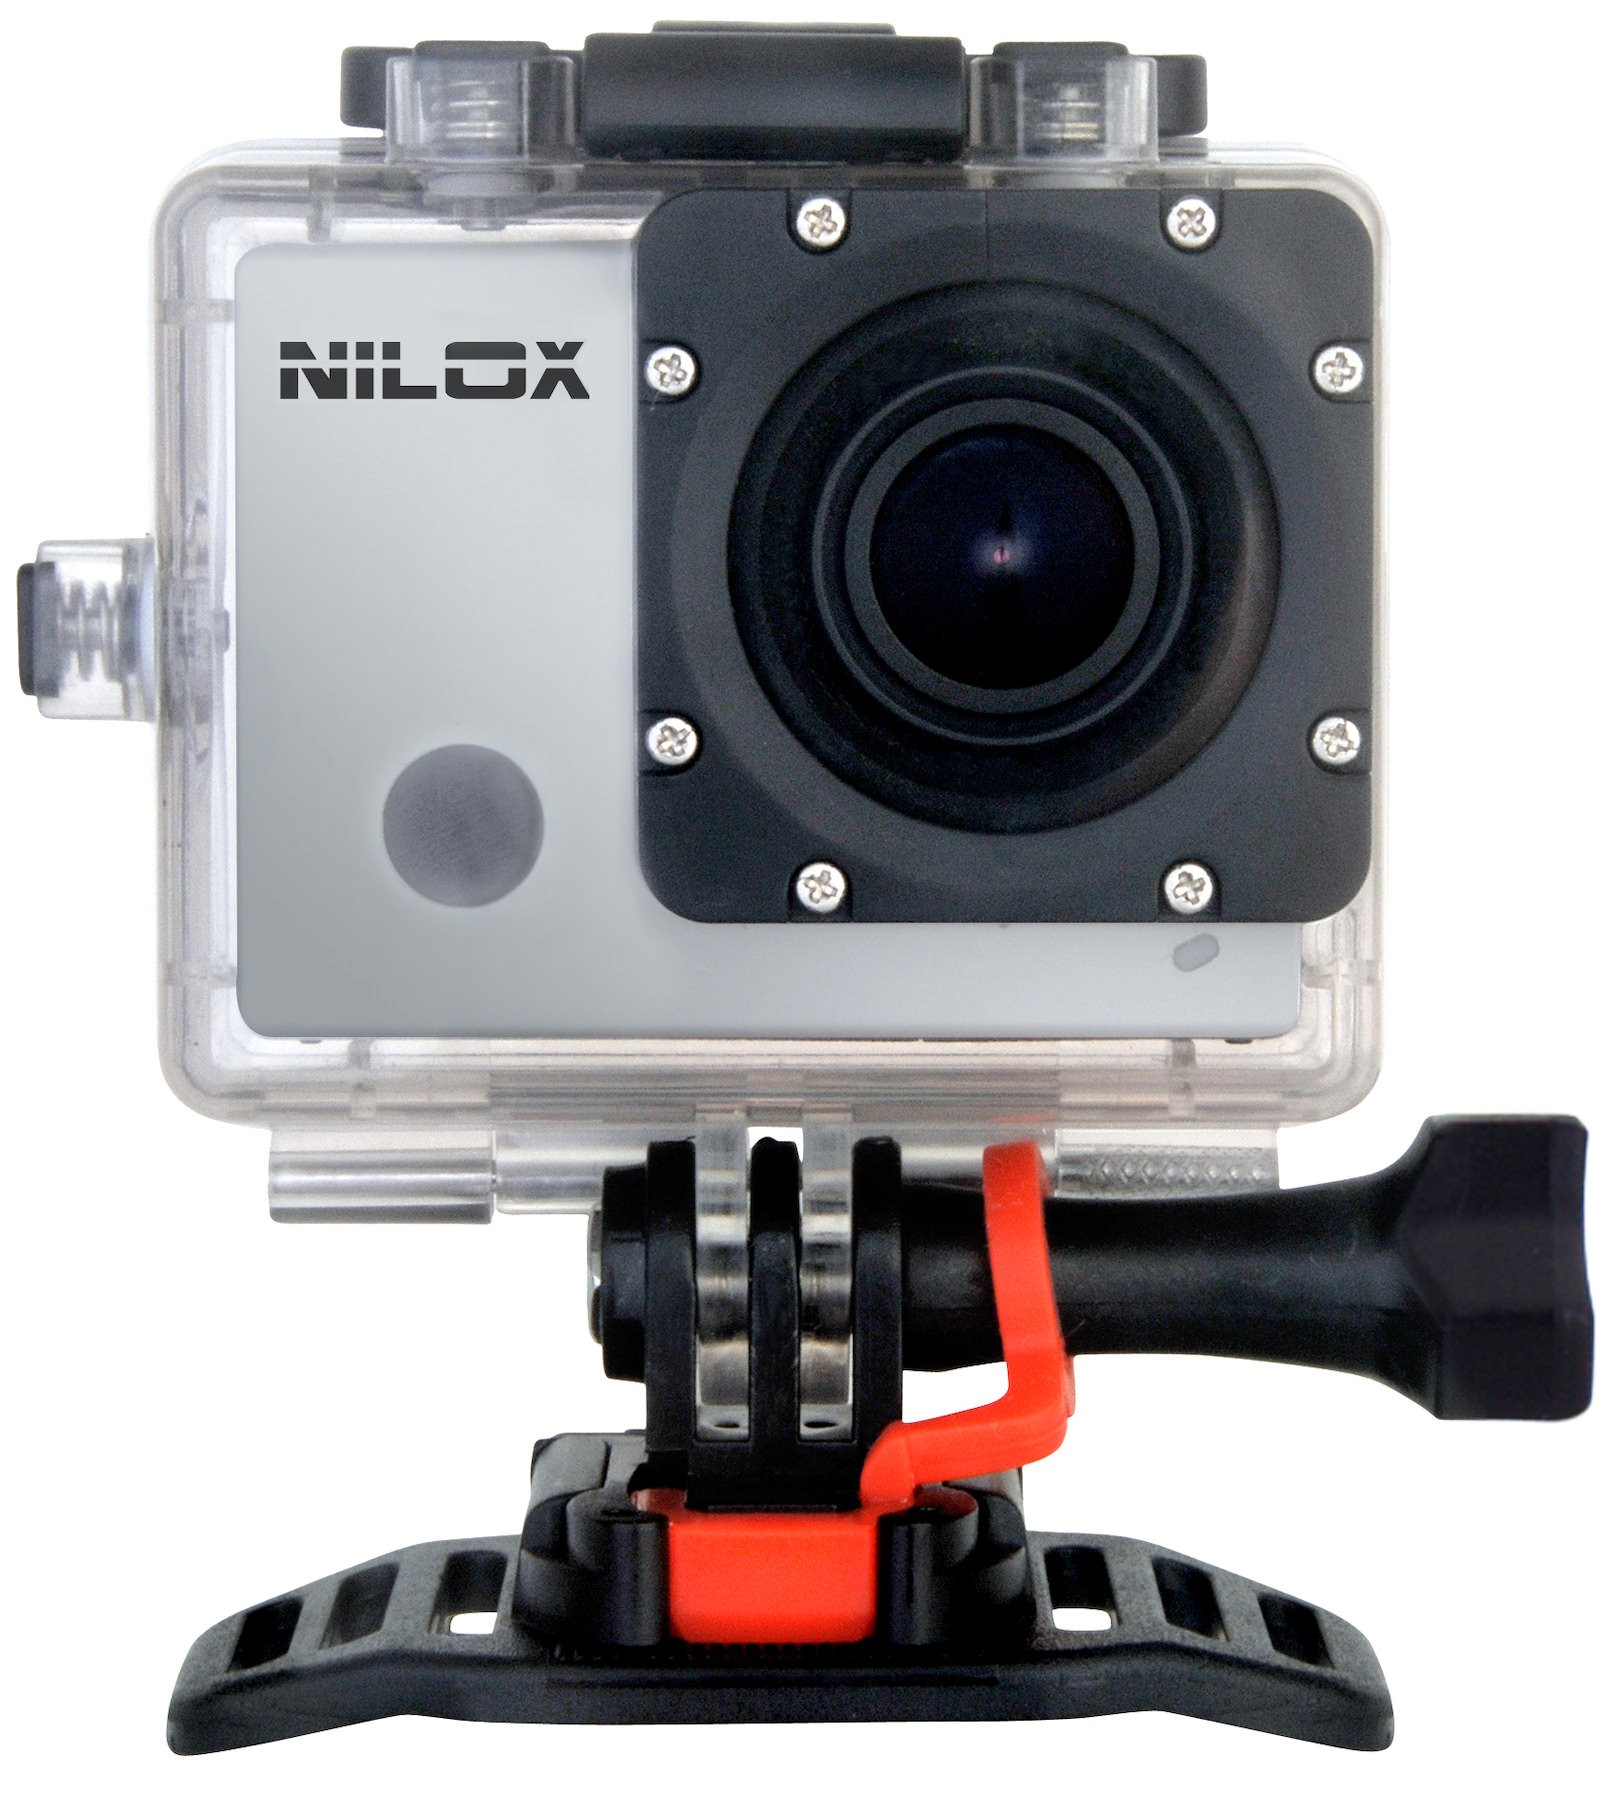 Nilox F60 Reloaded Action cam